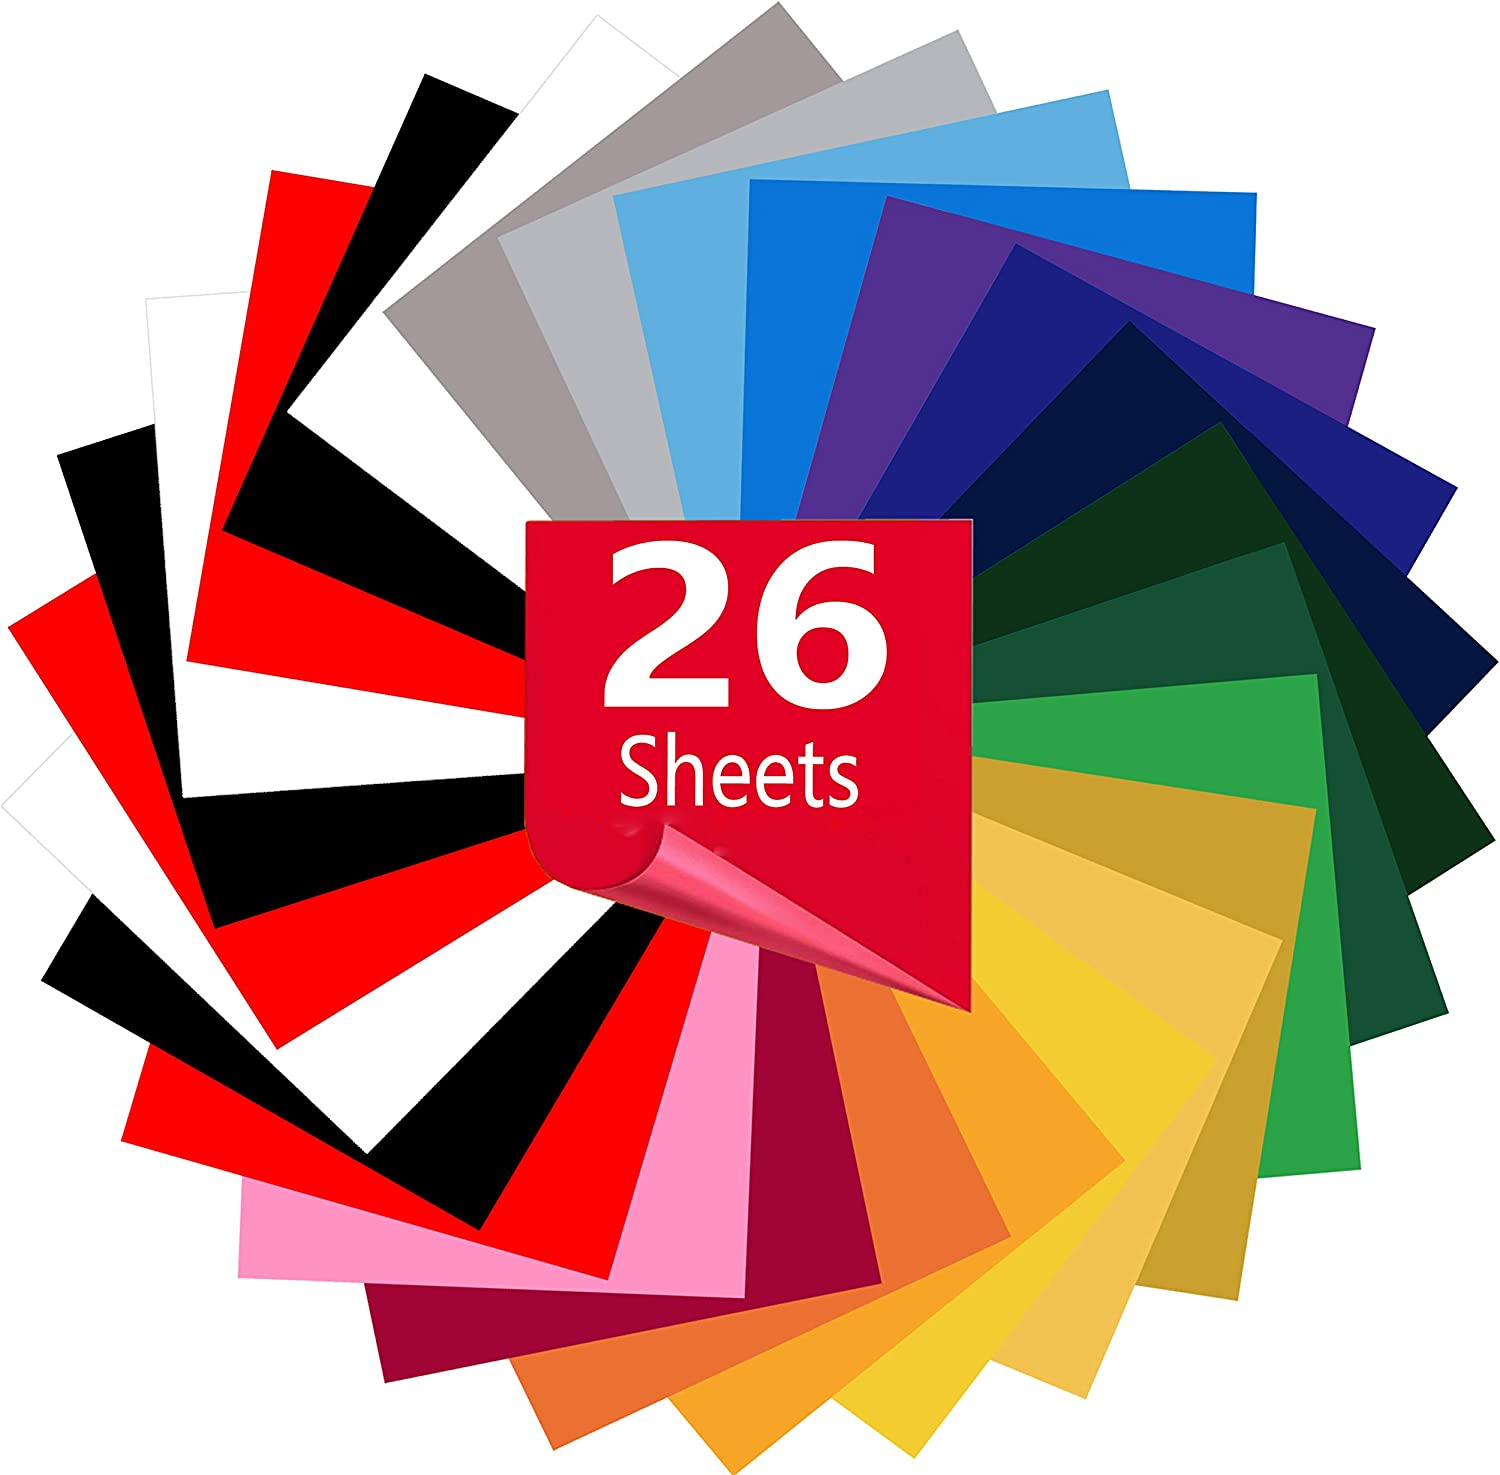 26 Sheets-Iron On Vinyl HTV Bundle Heat Transfer Vinyl for T-Shirts 12in.x10in